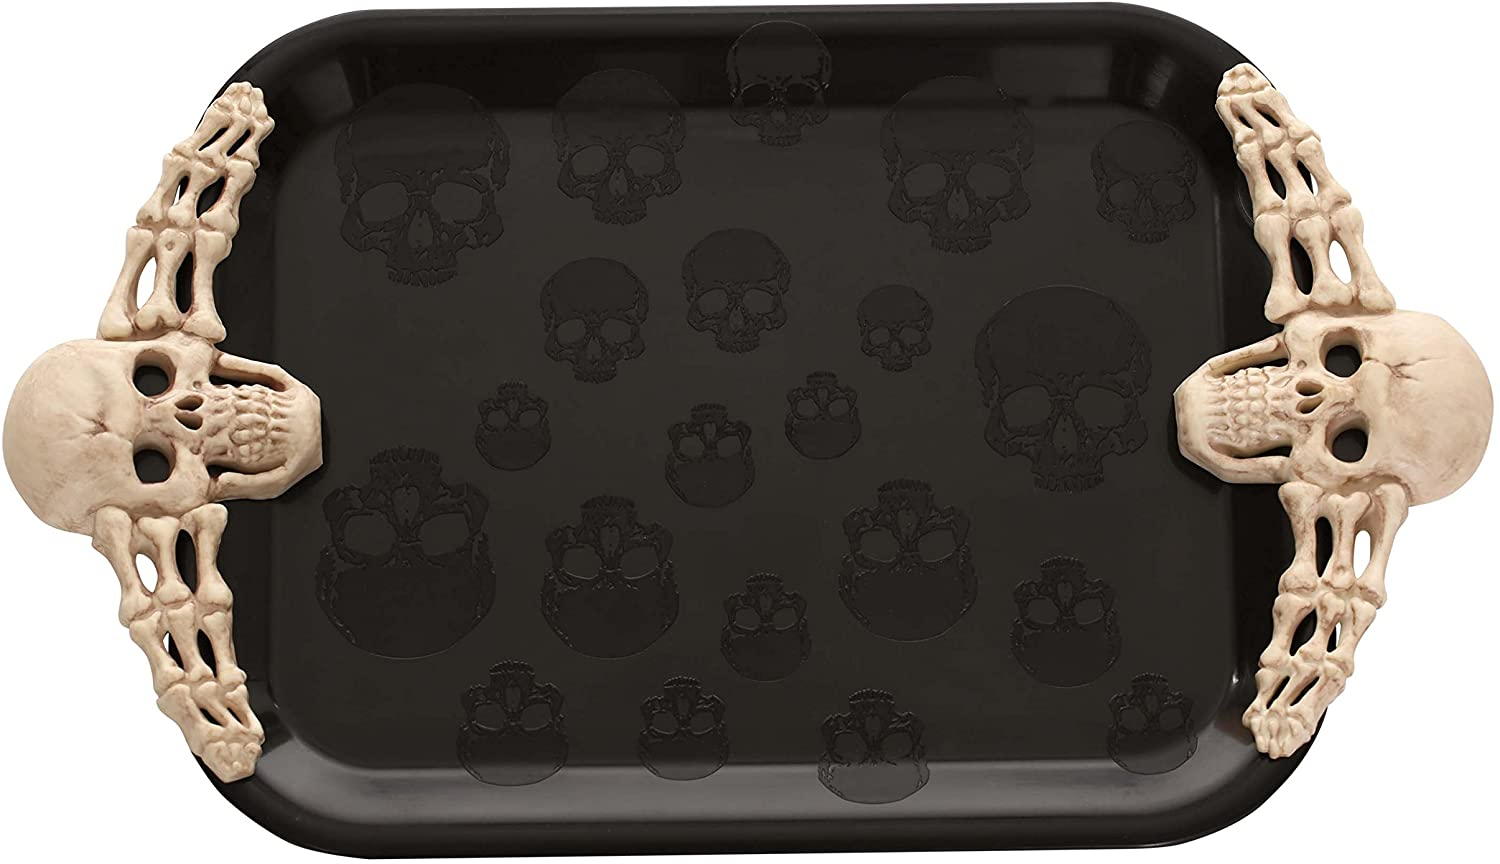 Skeleton serving tray